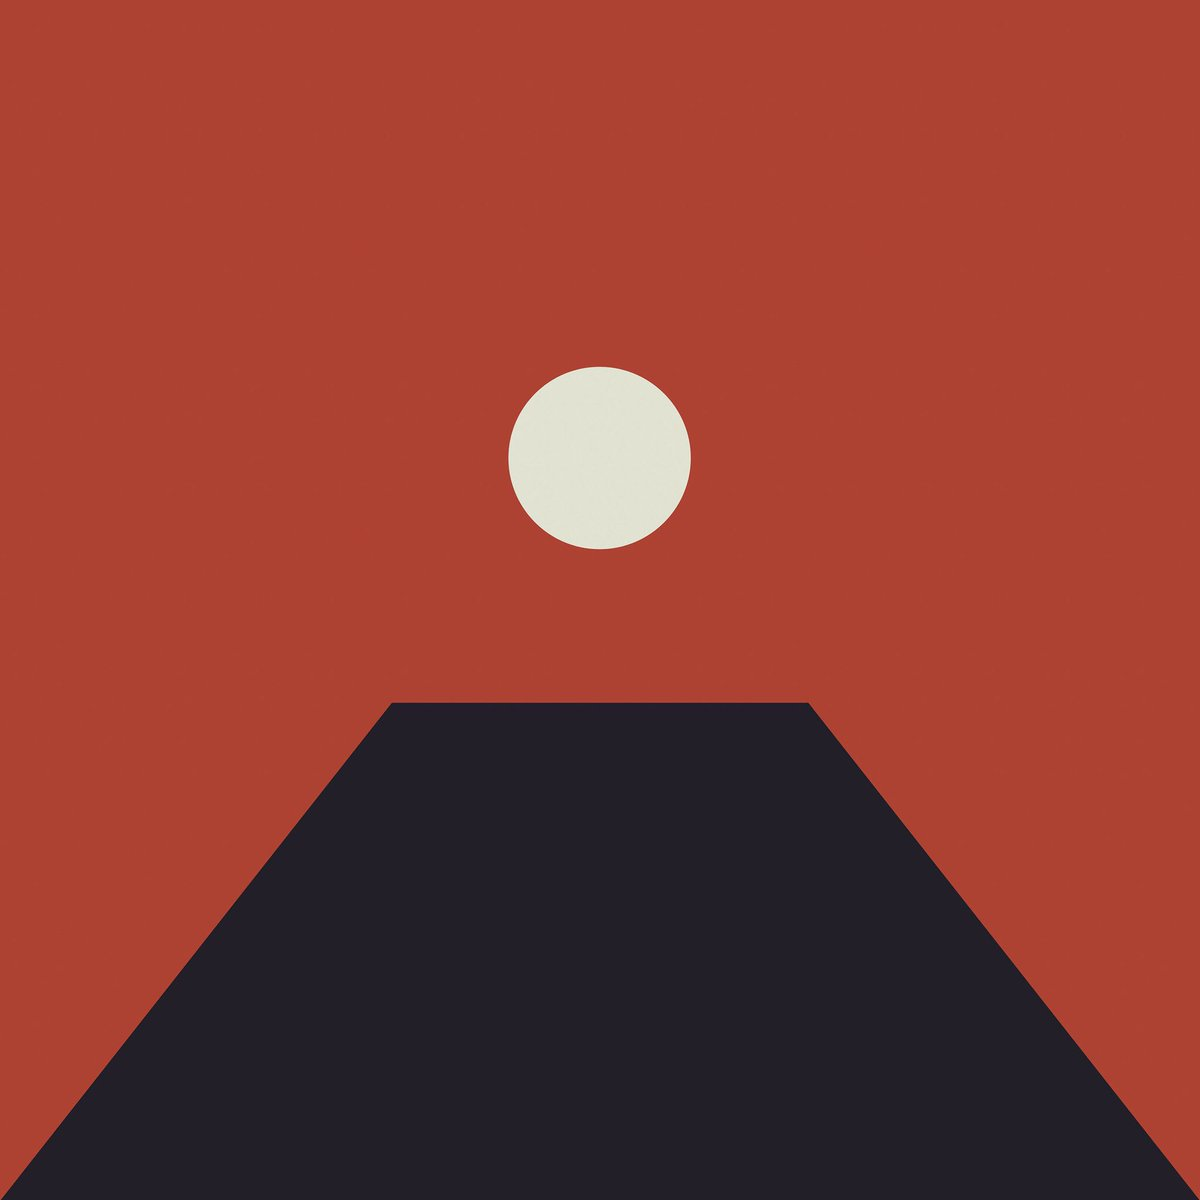 New Tycho album: Epoch. Download it from iTunes today. https://t.co/VOM8mW426Z https://t.co/rB9C5z4F1q